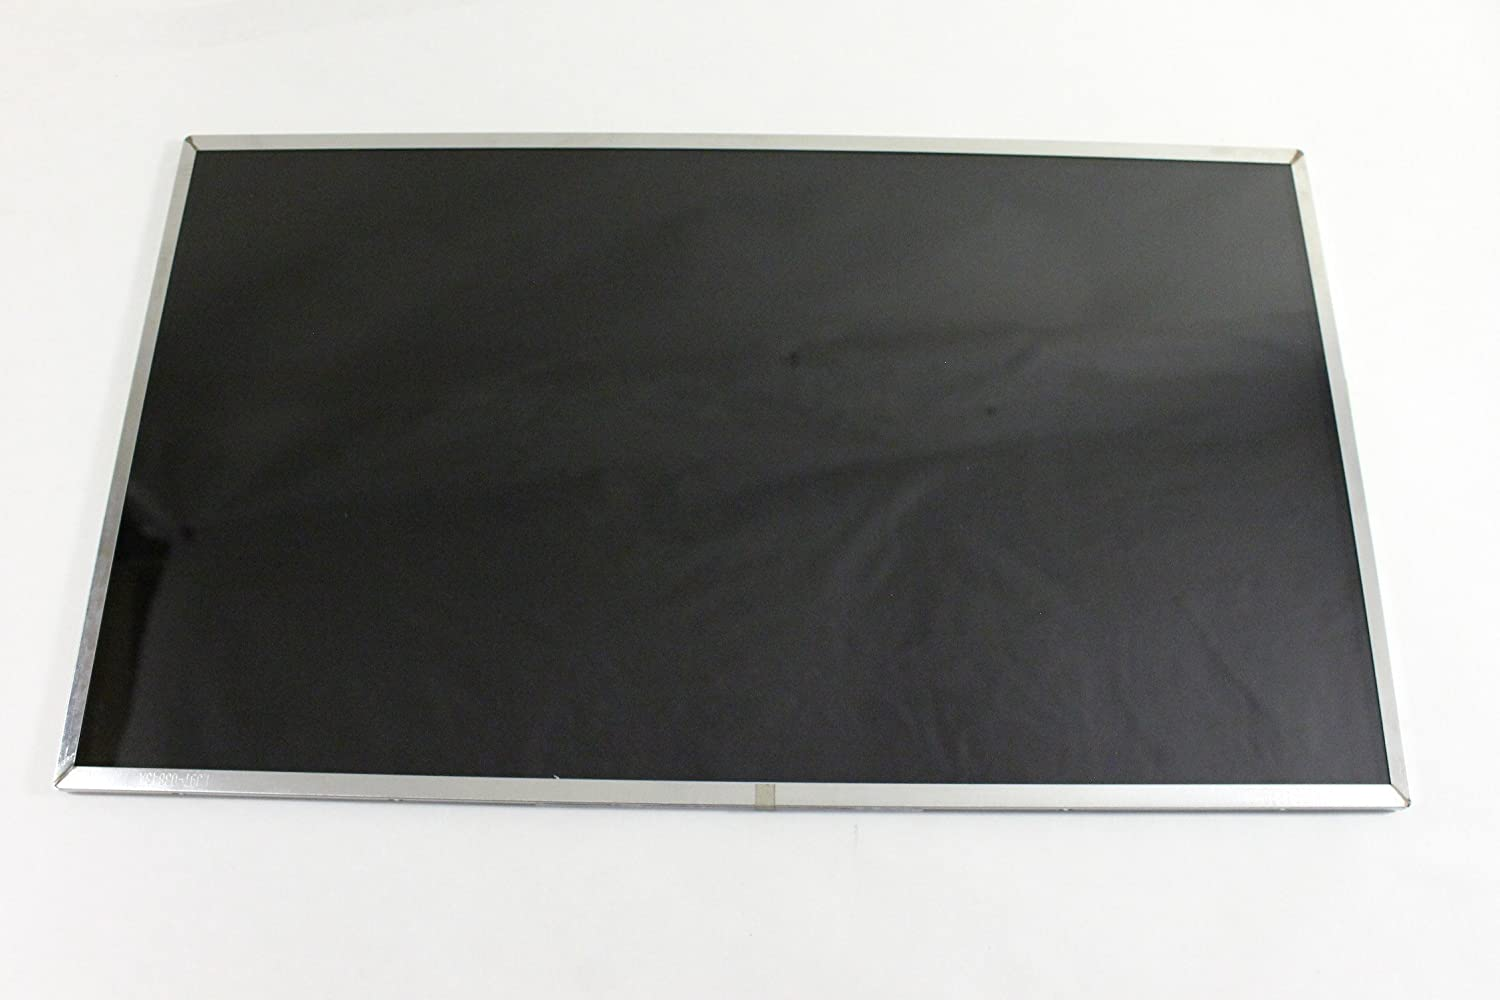 "Dell Inspiron 5520 LCD Screen 3521 LED YR1W4 HD 15.6"" 3521 7520"